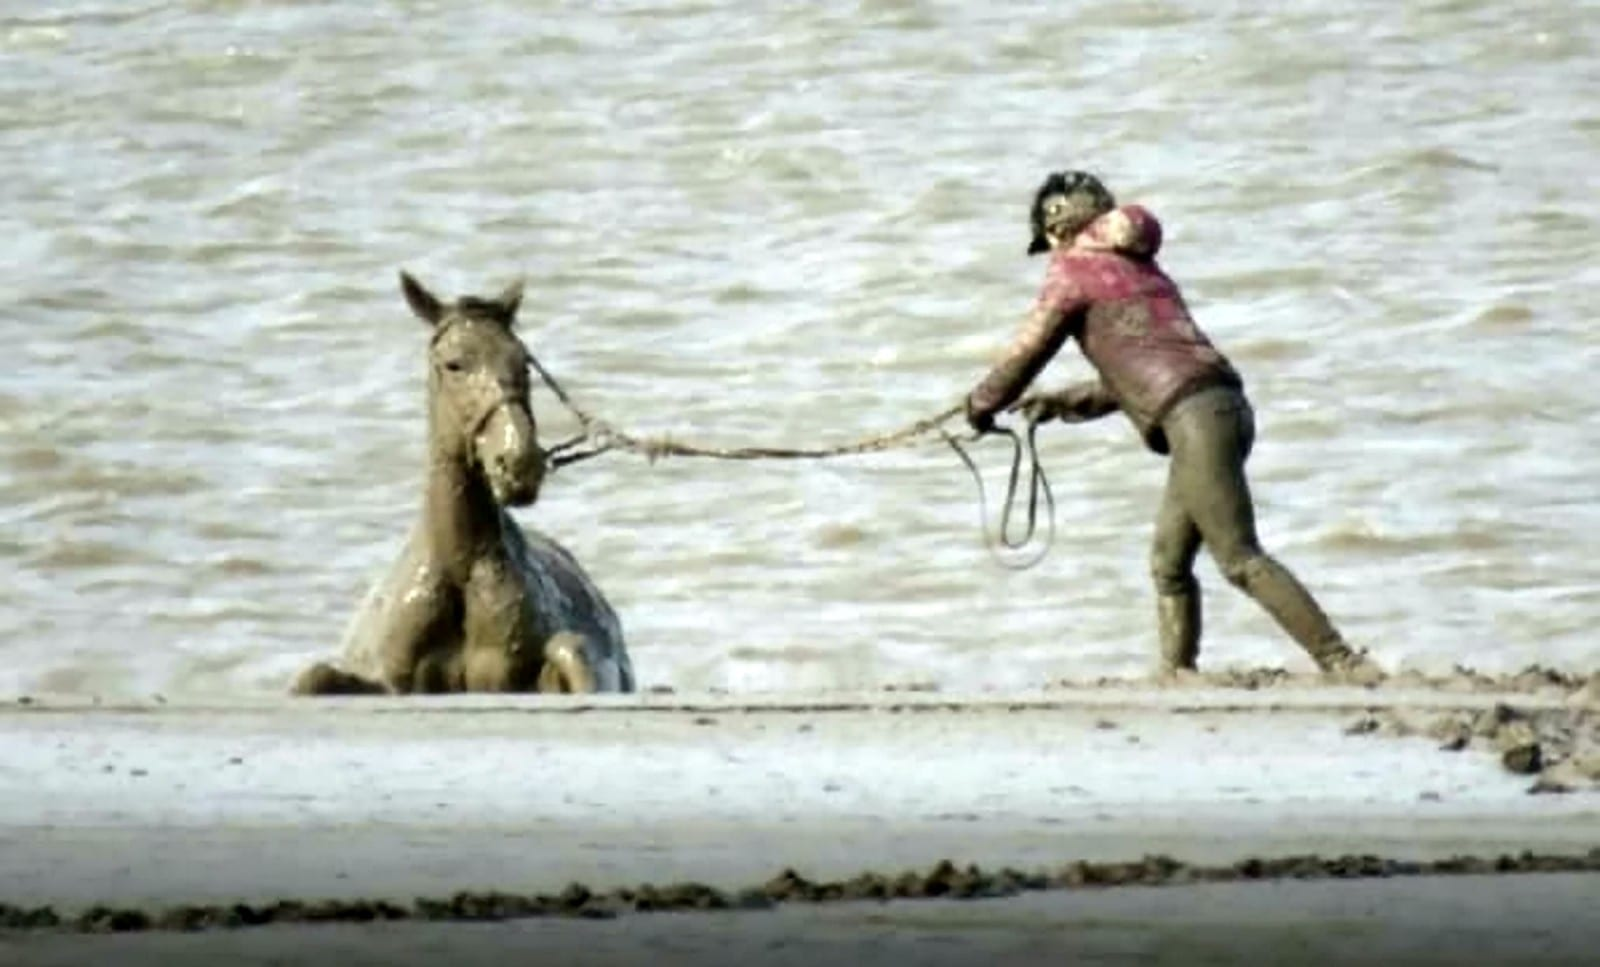 Trapped Horse And Rider Saved From Drowning In Mud By Huge Rescue Operation